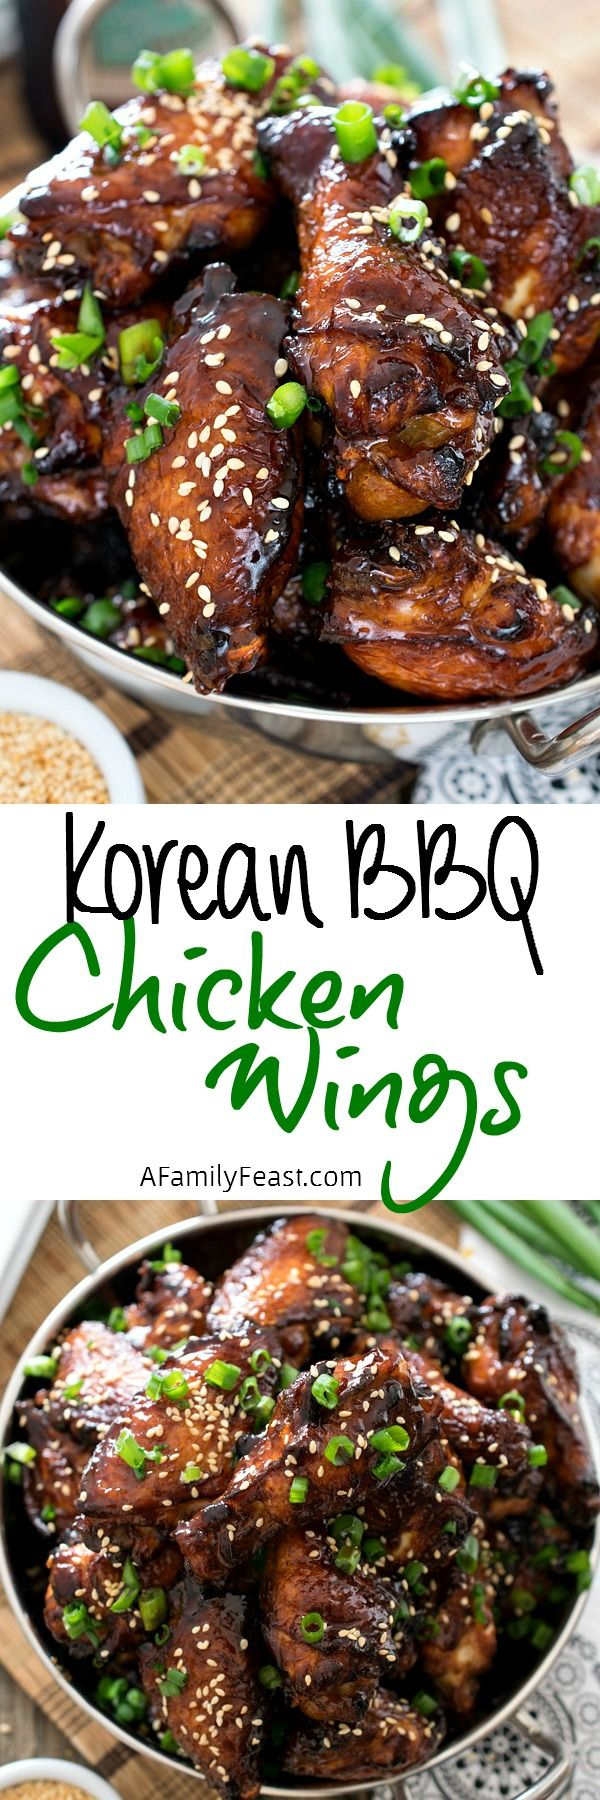 Korean Barbecue Chicken Wings - Super flavorful chicken wings inspired by the same flavors you'd find in Bulgogi. So delicious!